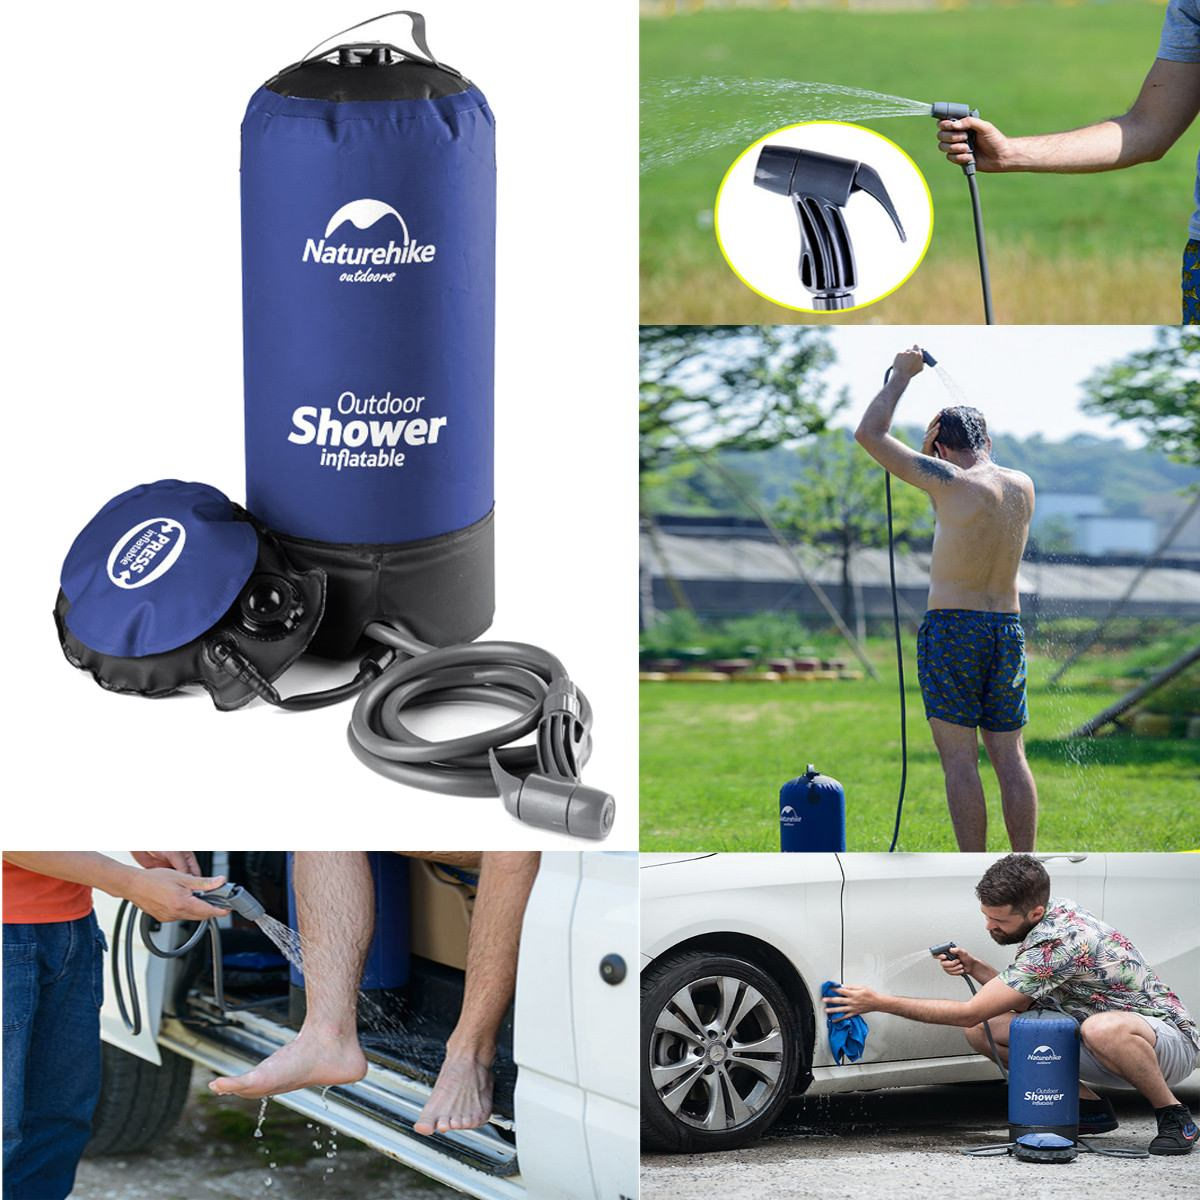 12L Inflatable Shower Pressure Shower Water Bag Portable Outdoor Hiking Shower Bag Folding Barrel Camping Water Storage Bags